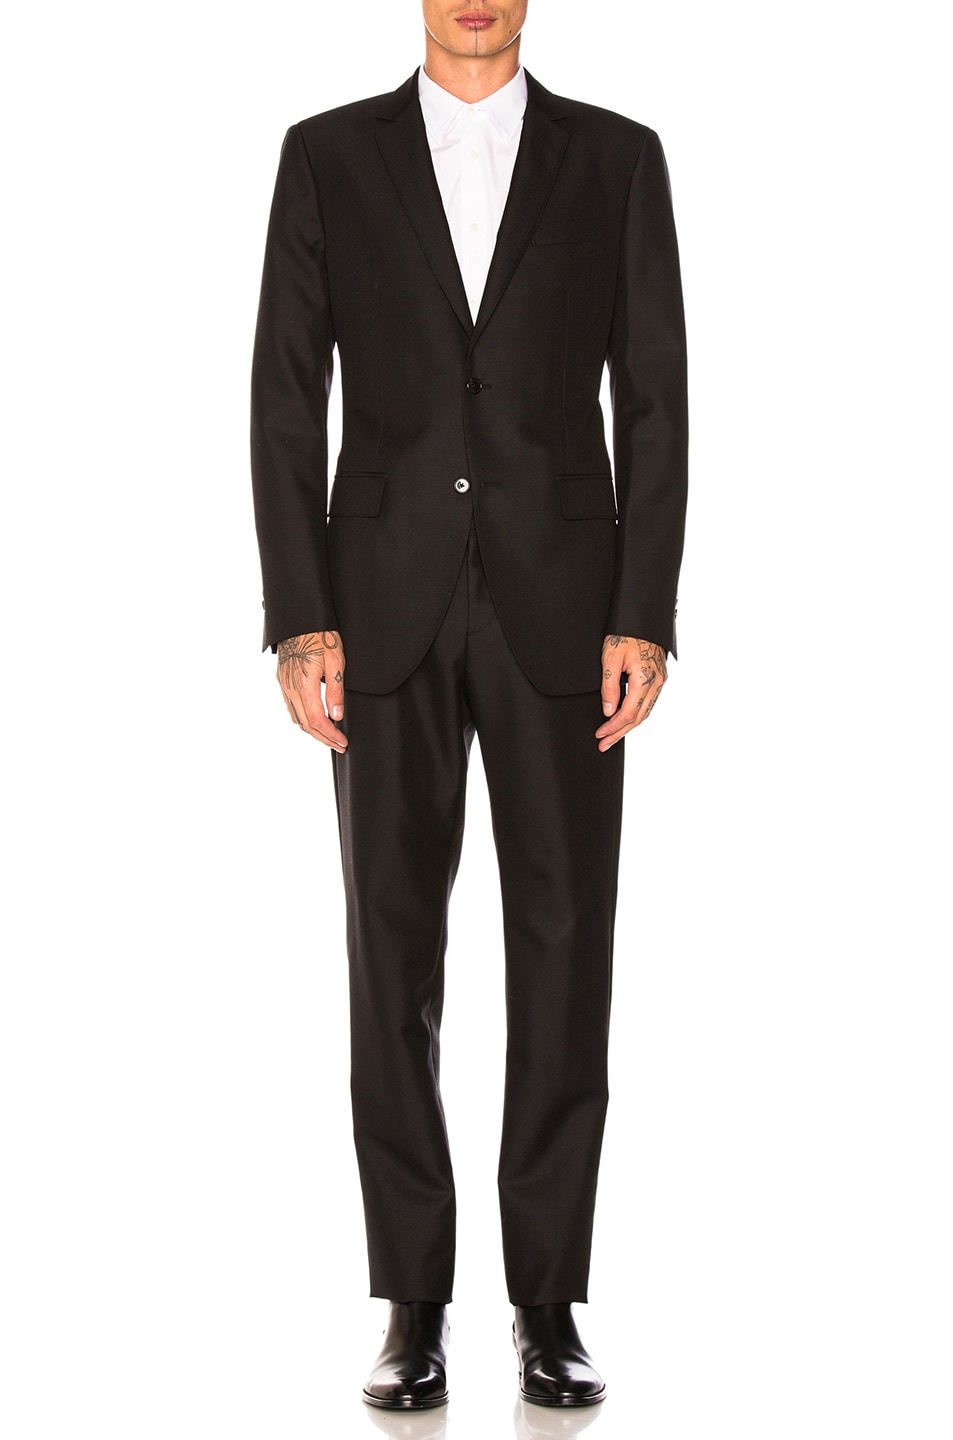 da10a3dd4a3 Image 2 of CALVIN KLEIN 205W39NYC Wool Mohair Plain Weave Suit in Black